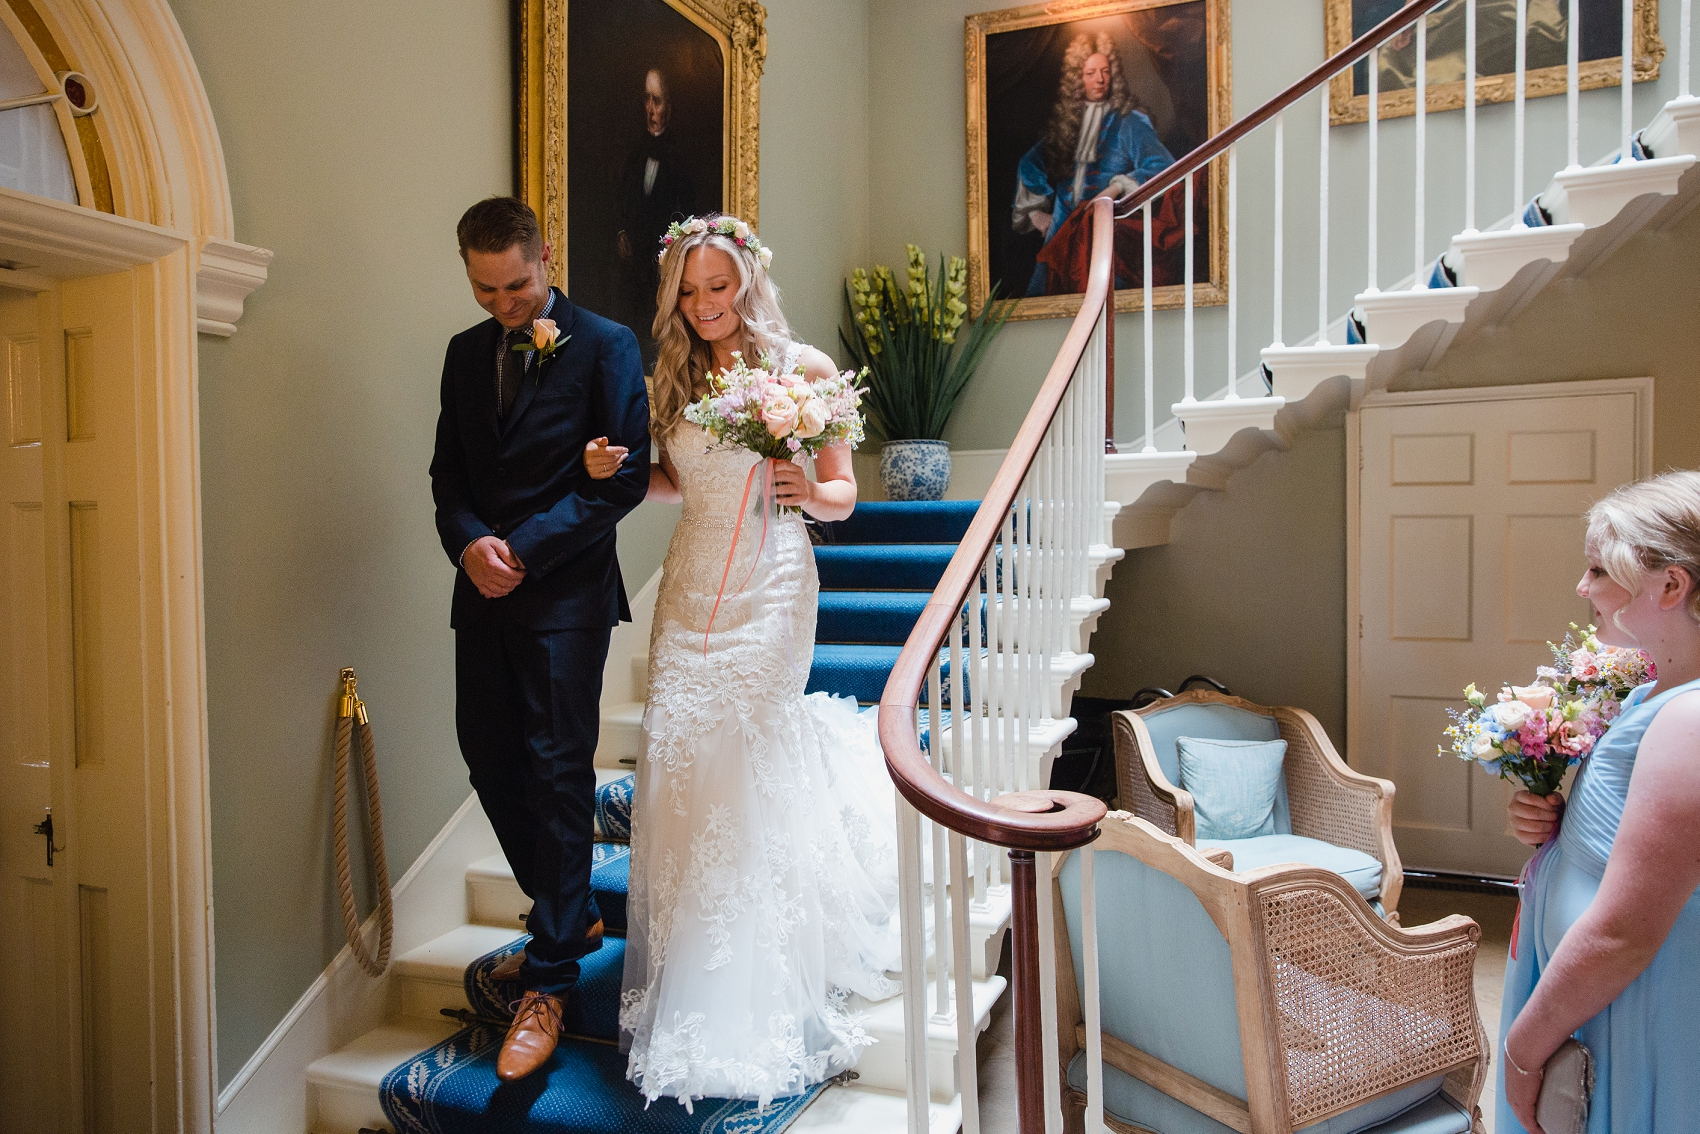 Staircase at Norwood Park wedding venue